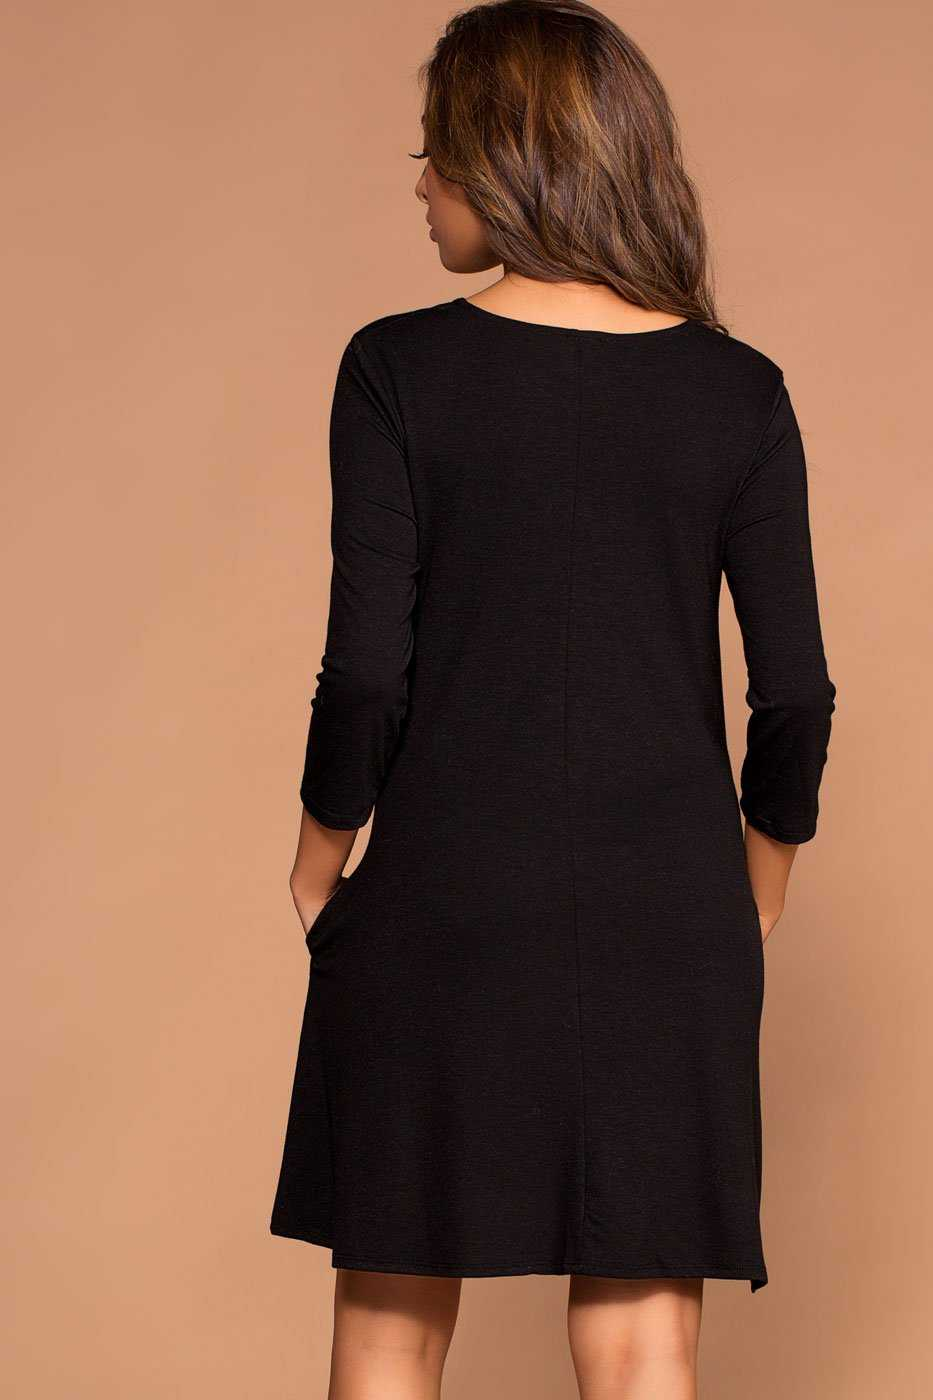 Catching Leaves Swing Pocket Dress - Black